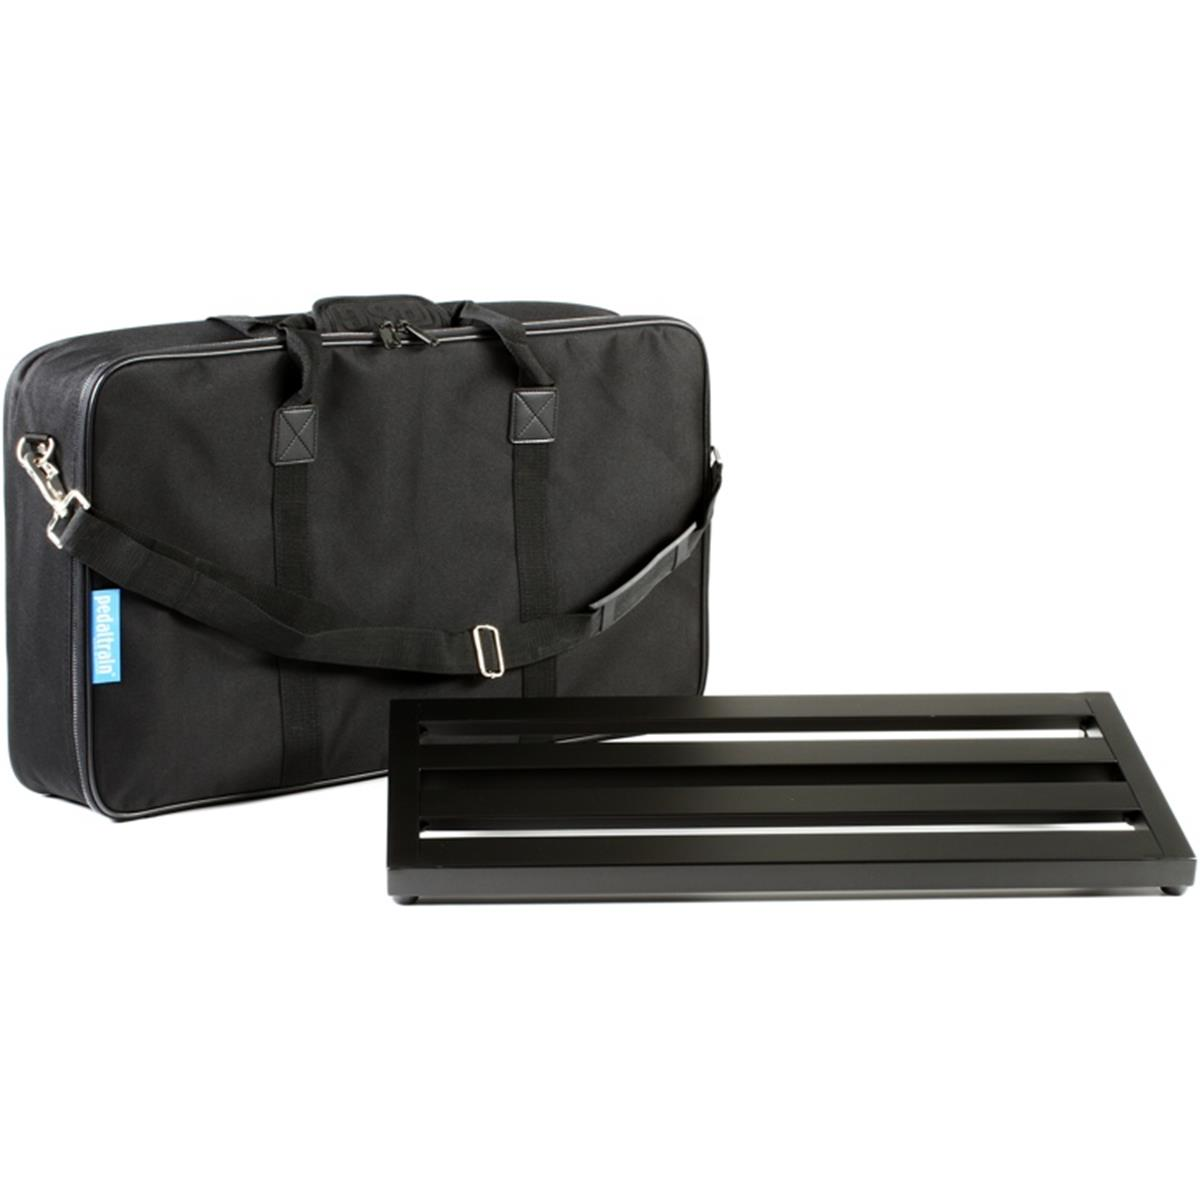 PEDALTRAIN CLASSIC 2 SOFT CASE BAG  pedal board